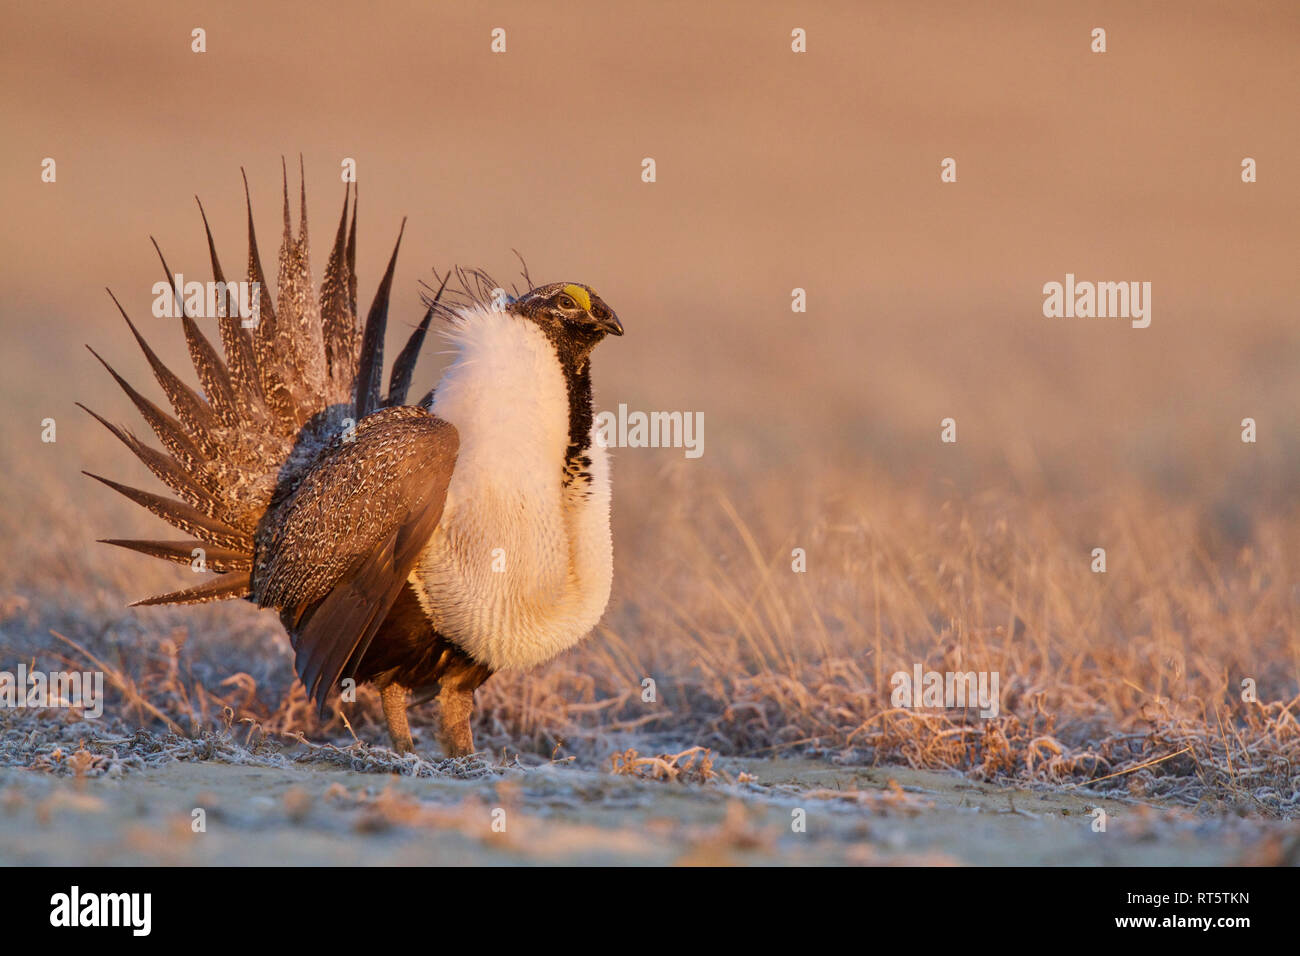 Greater Sage-grouse - a male performing its mating display on the lek (breeding grounds) - Stock Image